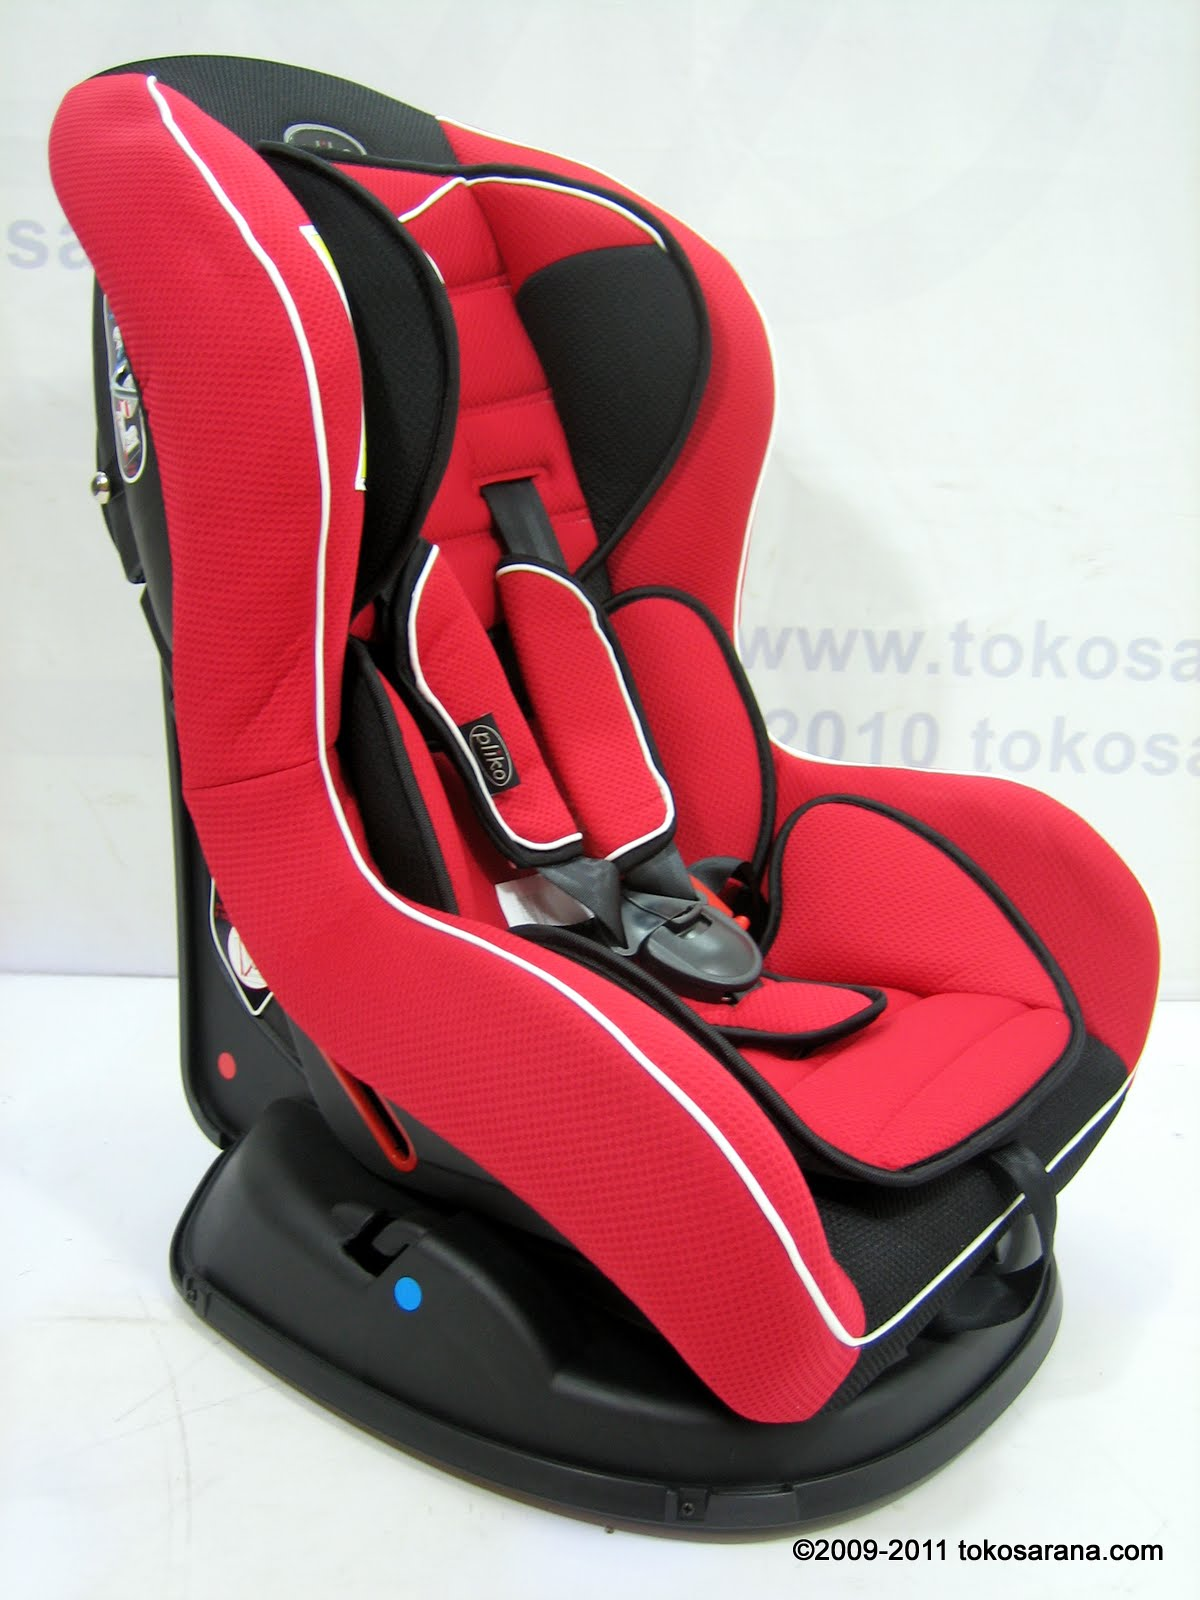 clearance sale sepeda mainan anak dan perlengkapan bayi convertible baby car seat pliko. Black Bedroom Furniture Sets. Home Design Ideas